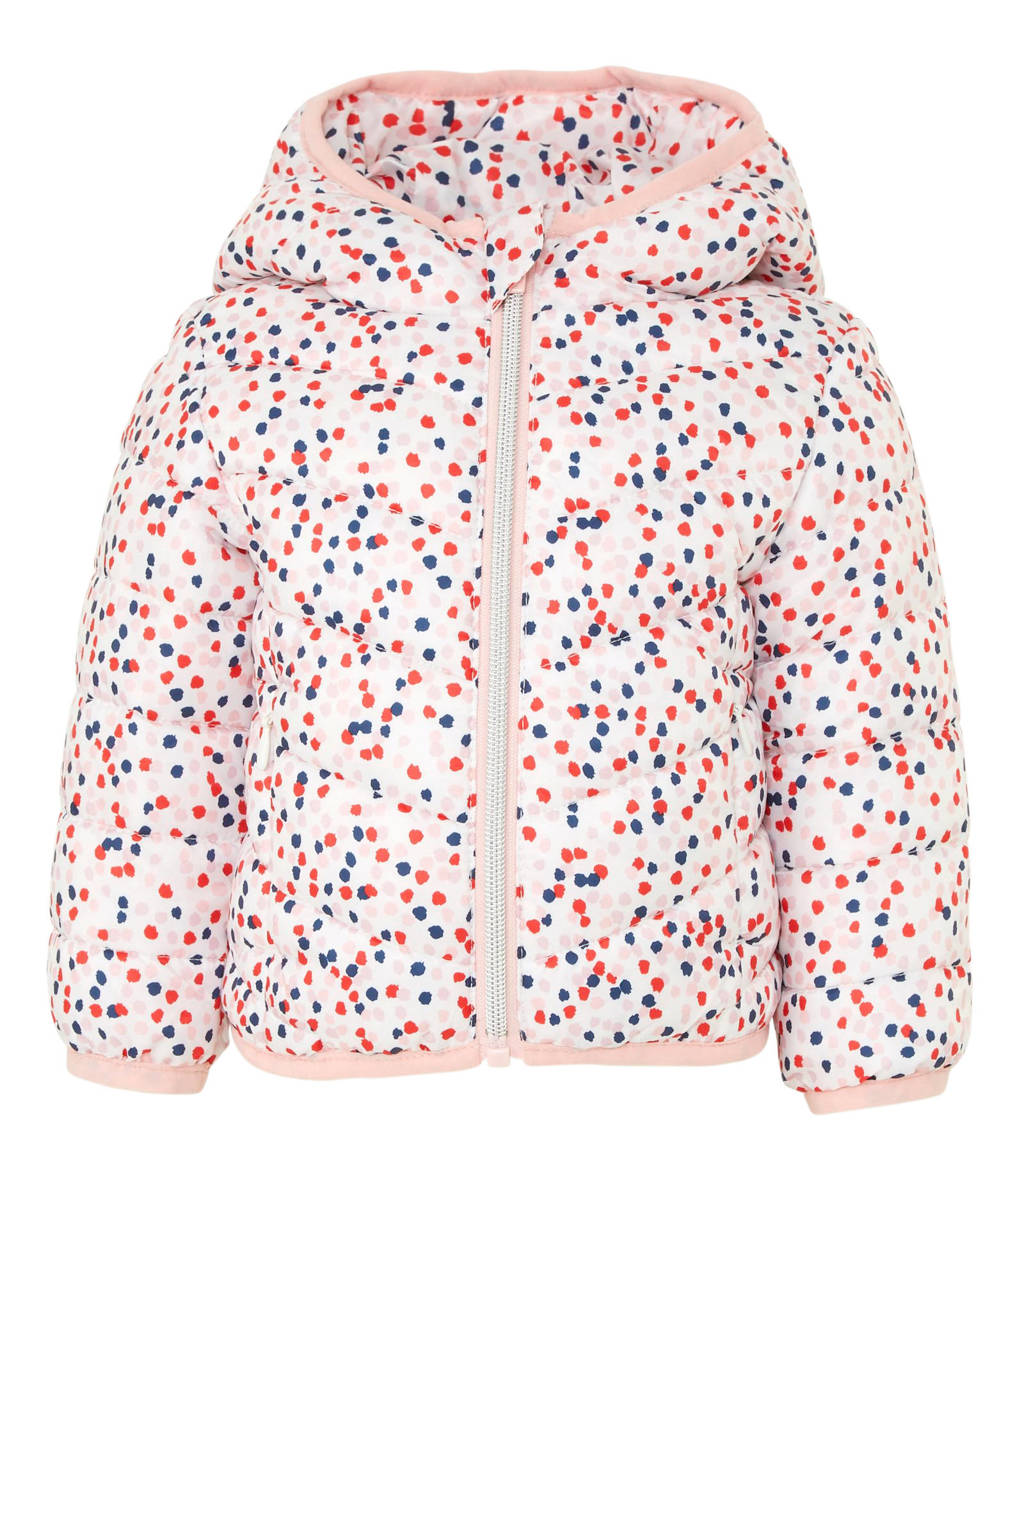 C&A Baby Club tussenjas met all over print roze, Roze/wit